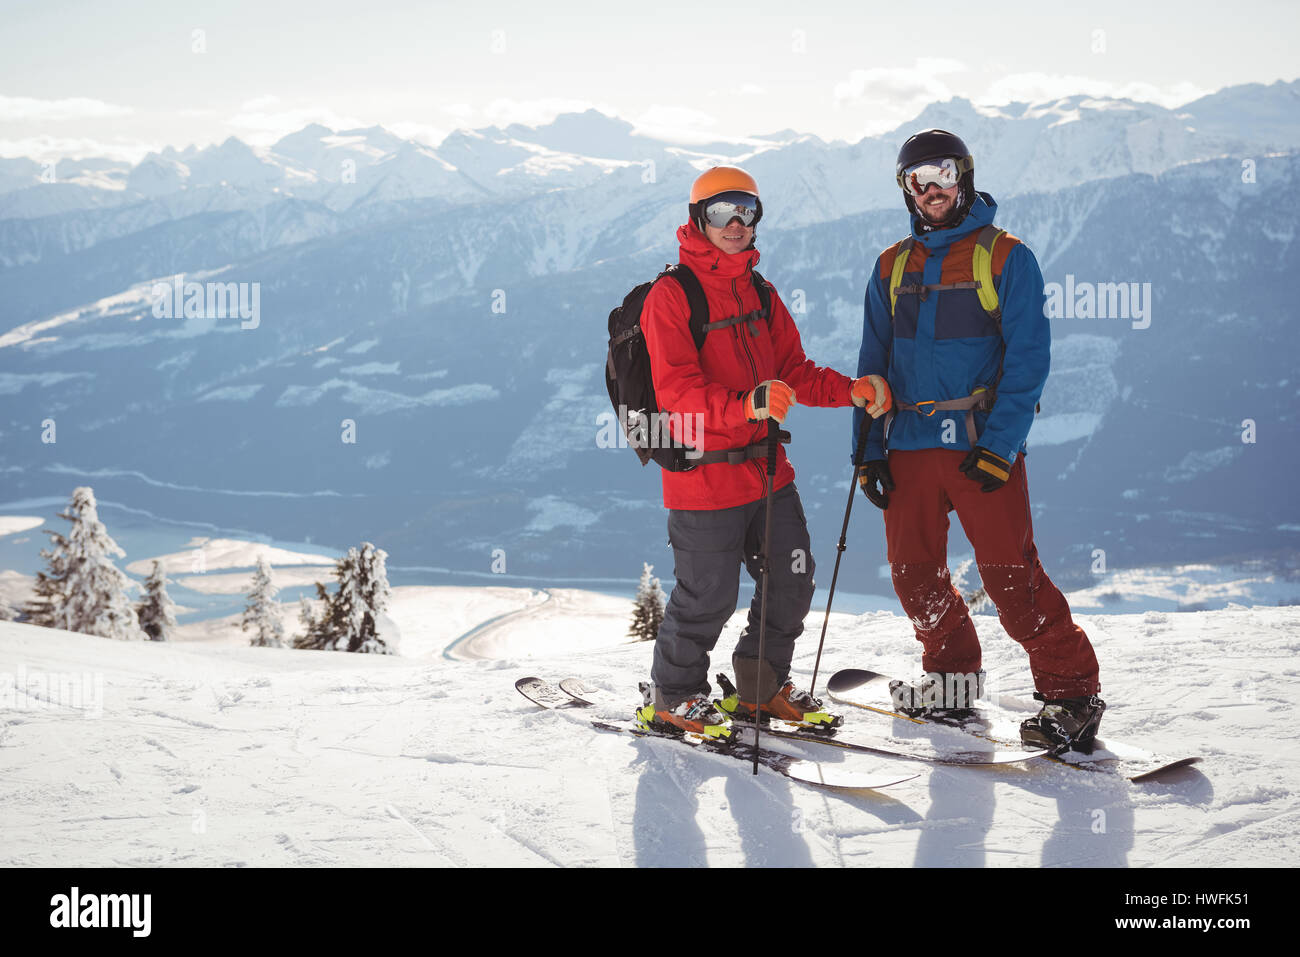 Two skiers standing together on snow covered mountain during winter Stock Photo